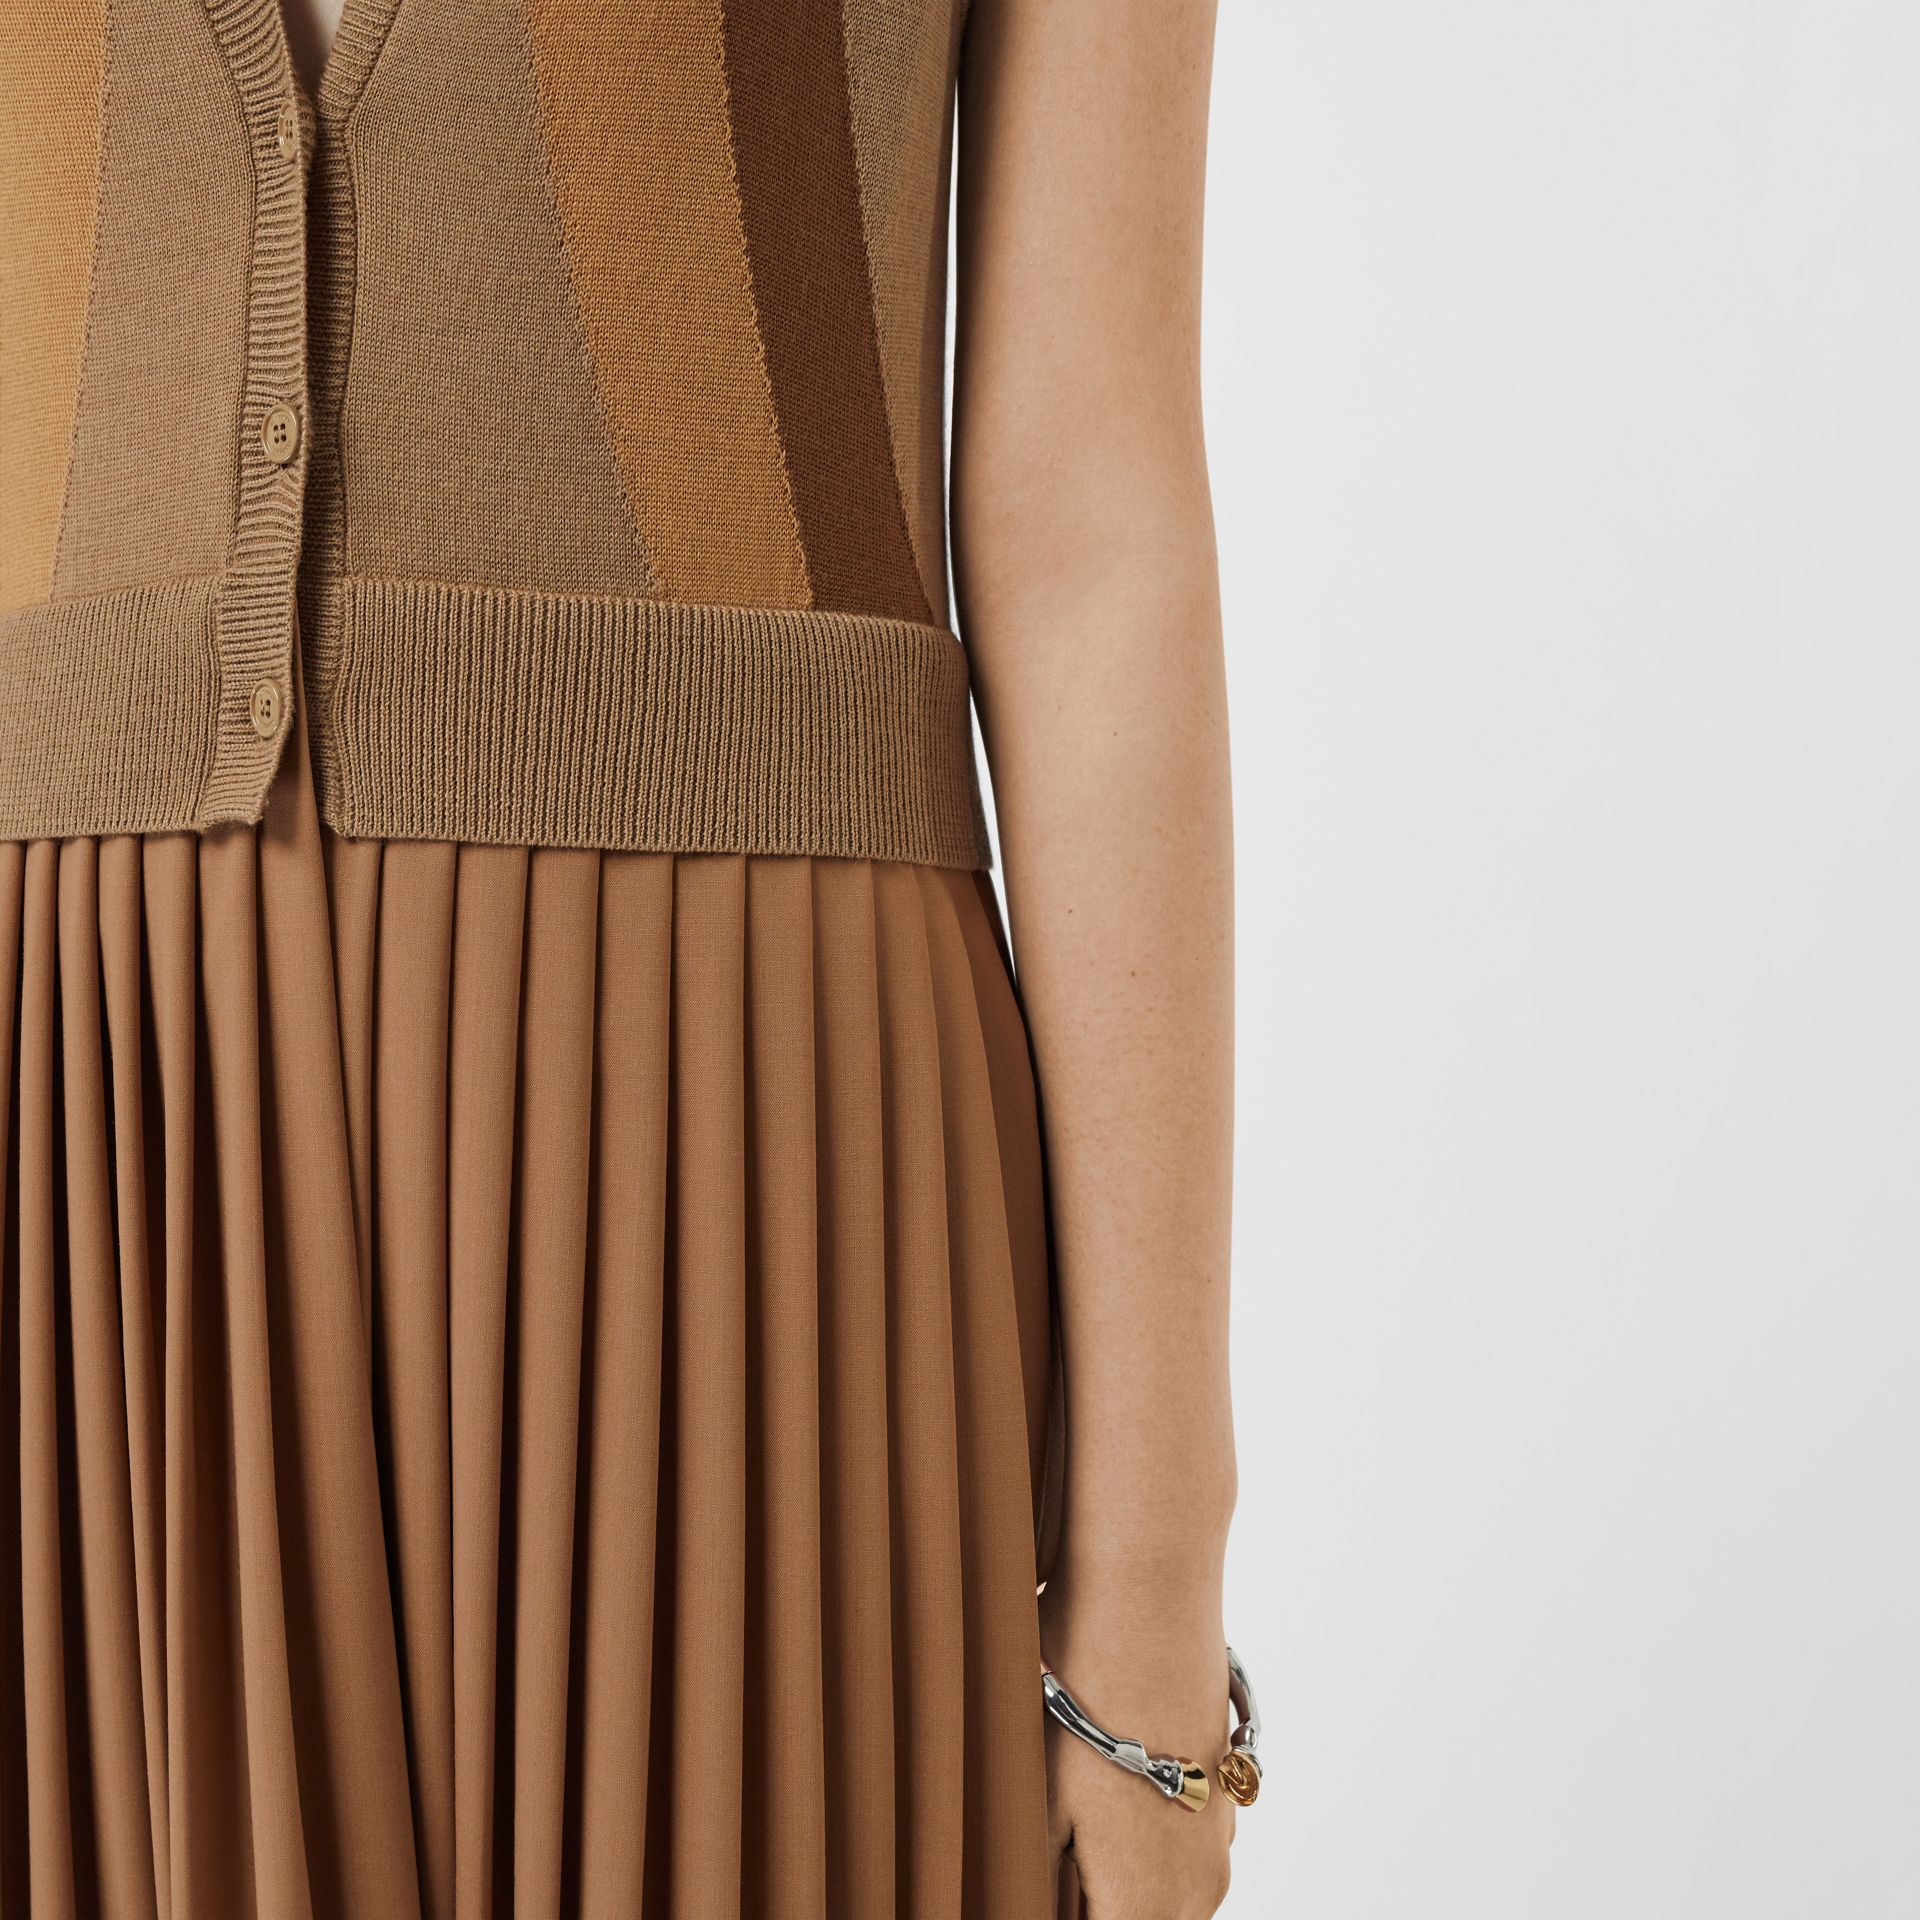 Sleeveless Knitted Wool V-neck Dress in Acorn - Women | Burberry United States - gallery image 4